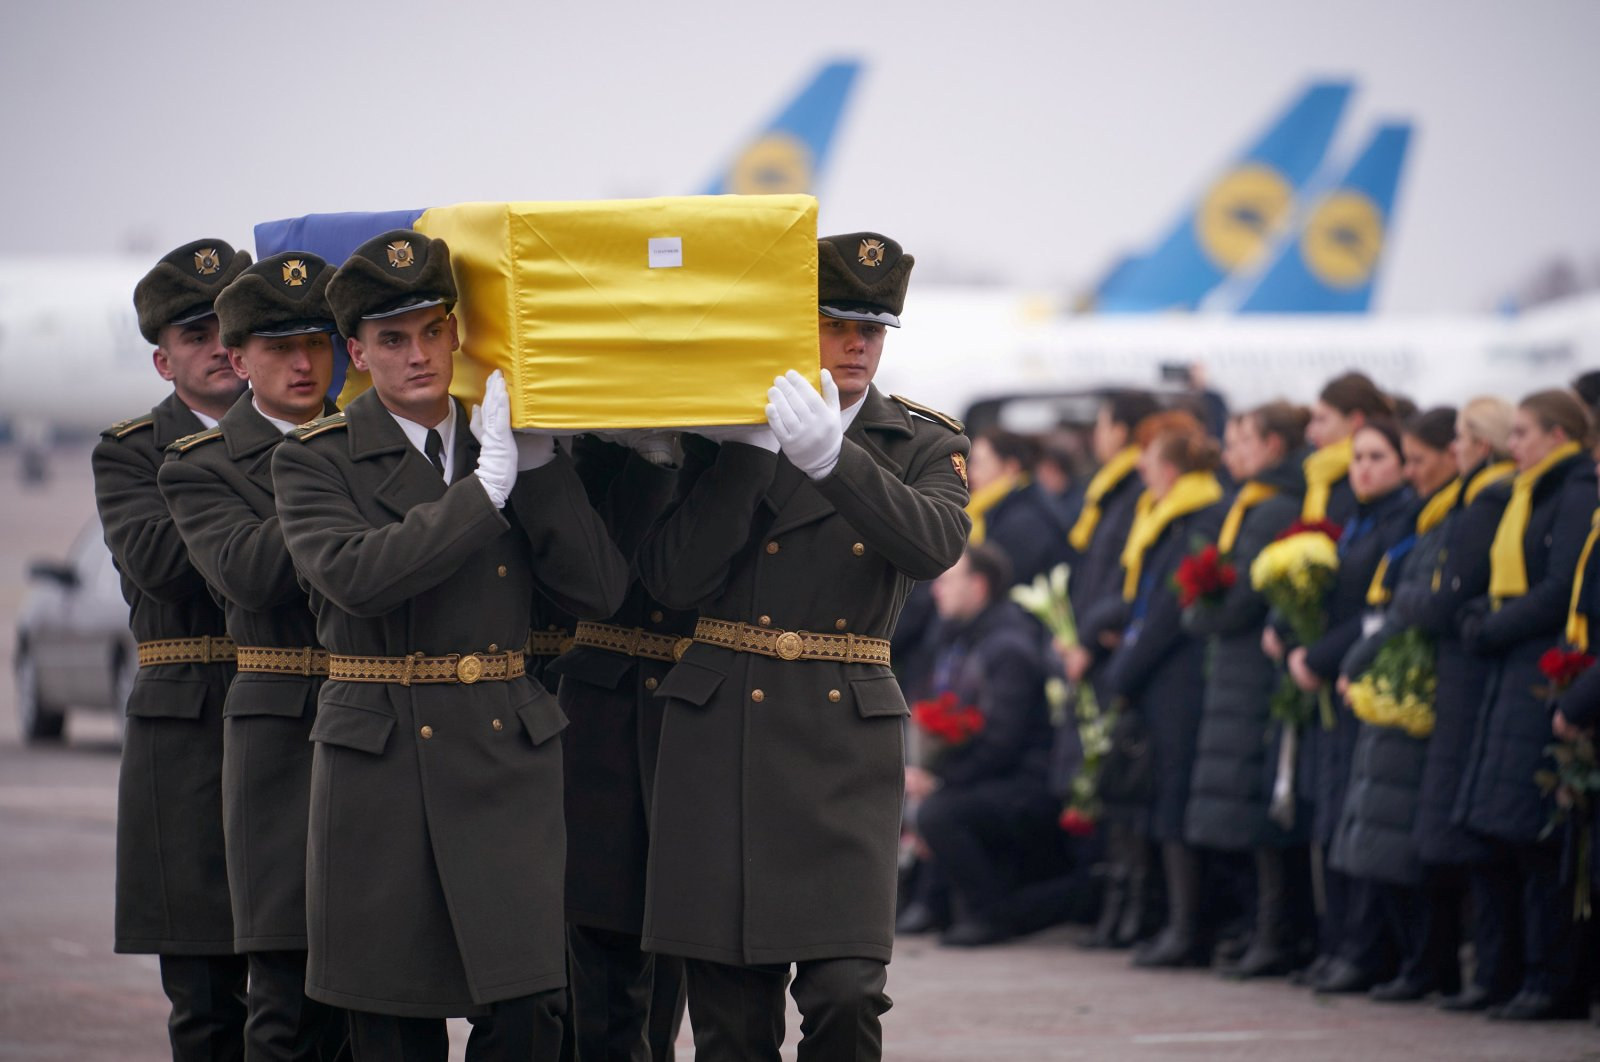 Soldiers carry a coffin containing the remains of one of the 11 Ukrainian victims of the Ukraine International Airlines flight 752 plane disaster during a memorial ceremony at the Boryspil International Airport, outside Kyiv, Ukraine, Jan. 19, 2020. (Ukrainian Presidential Press Service via Reuters)